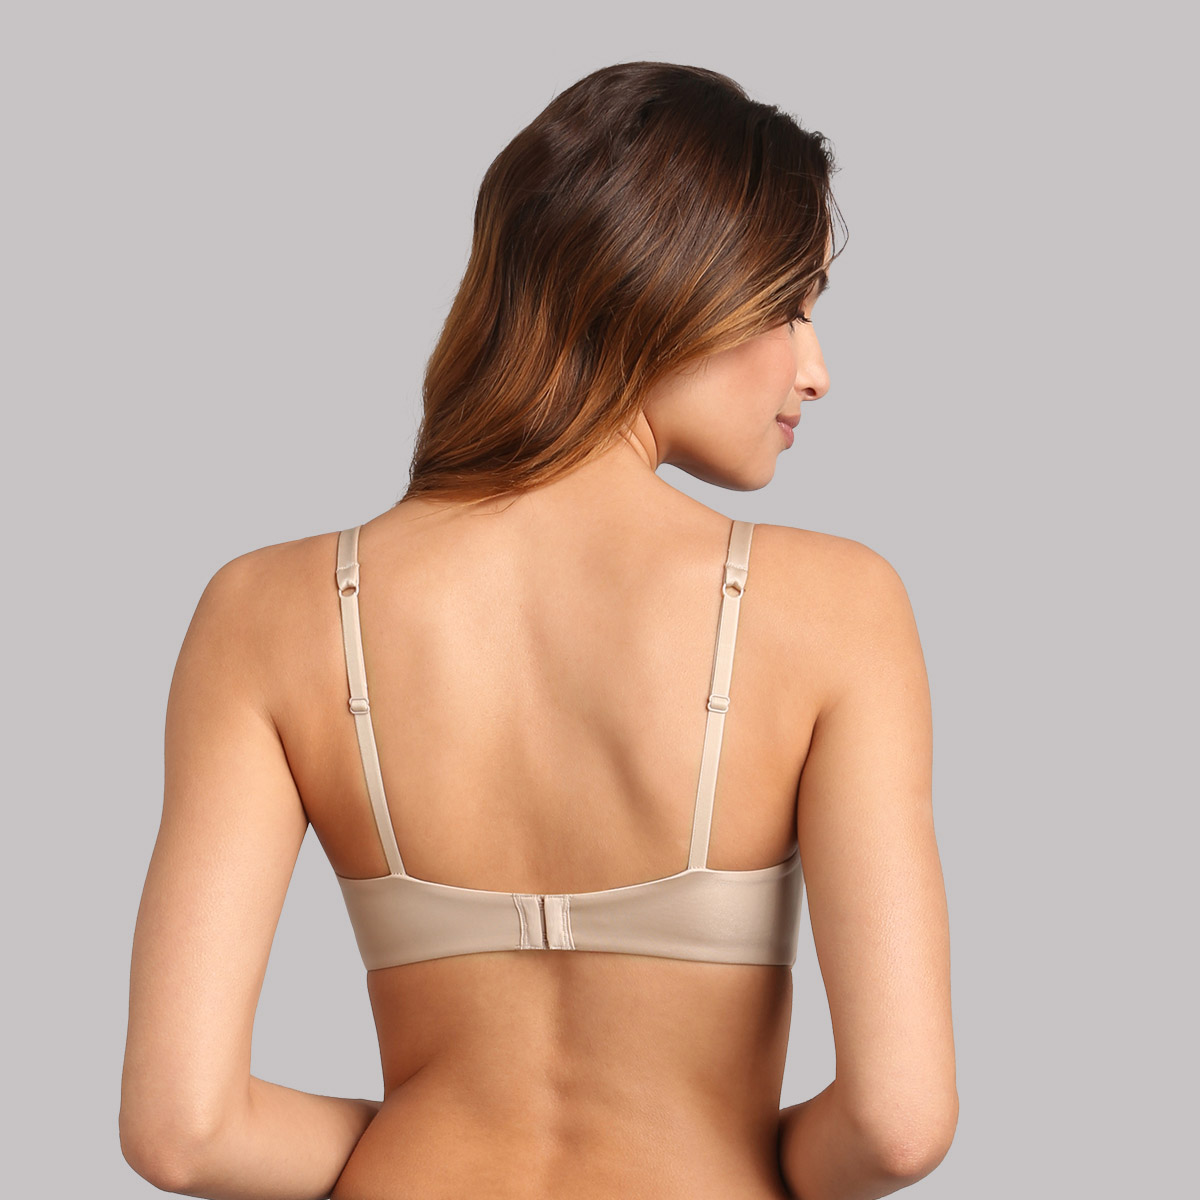 Full cup bra with removable underwires in light brown 24h Absolute Soft , , PLAYTEX